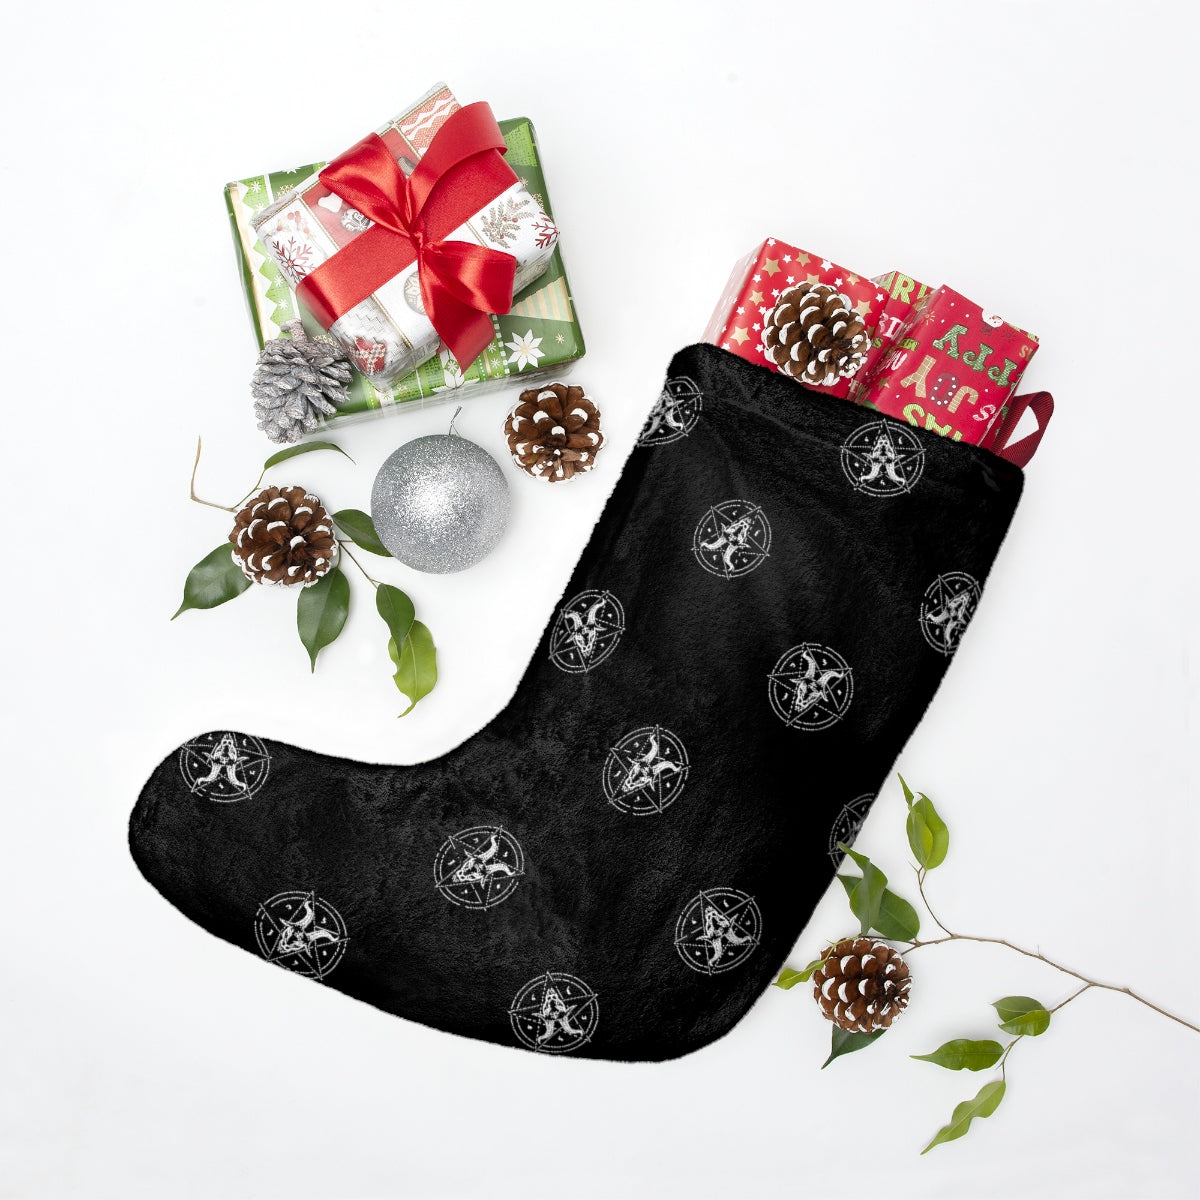 Fuzzy Satanic Holiday Stocking